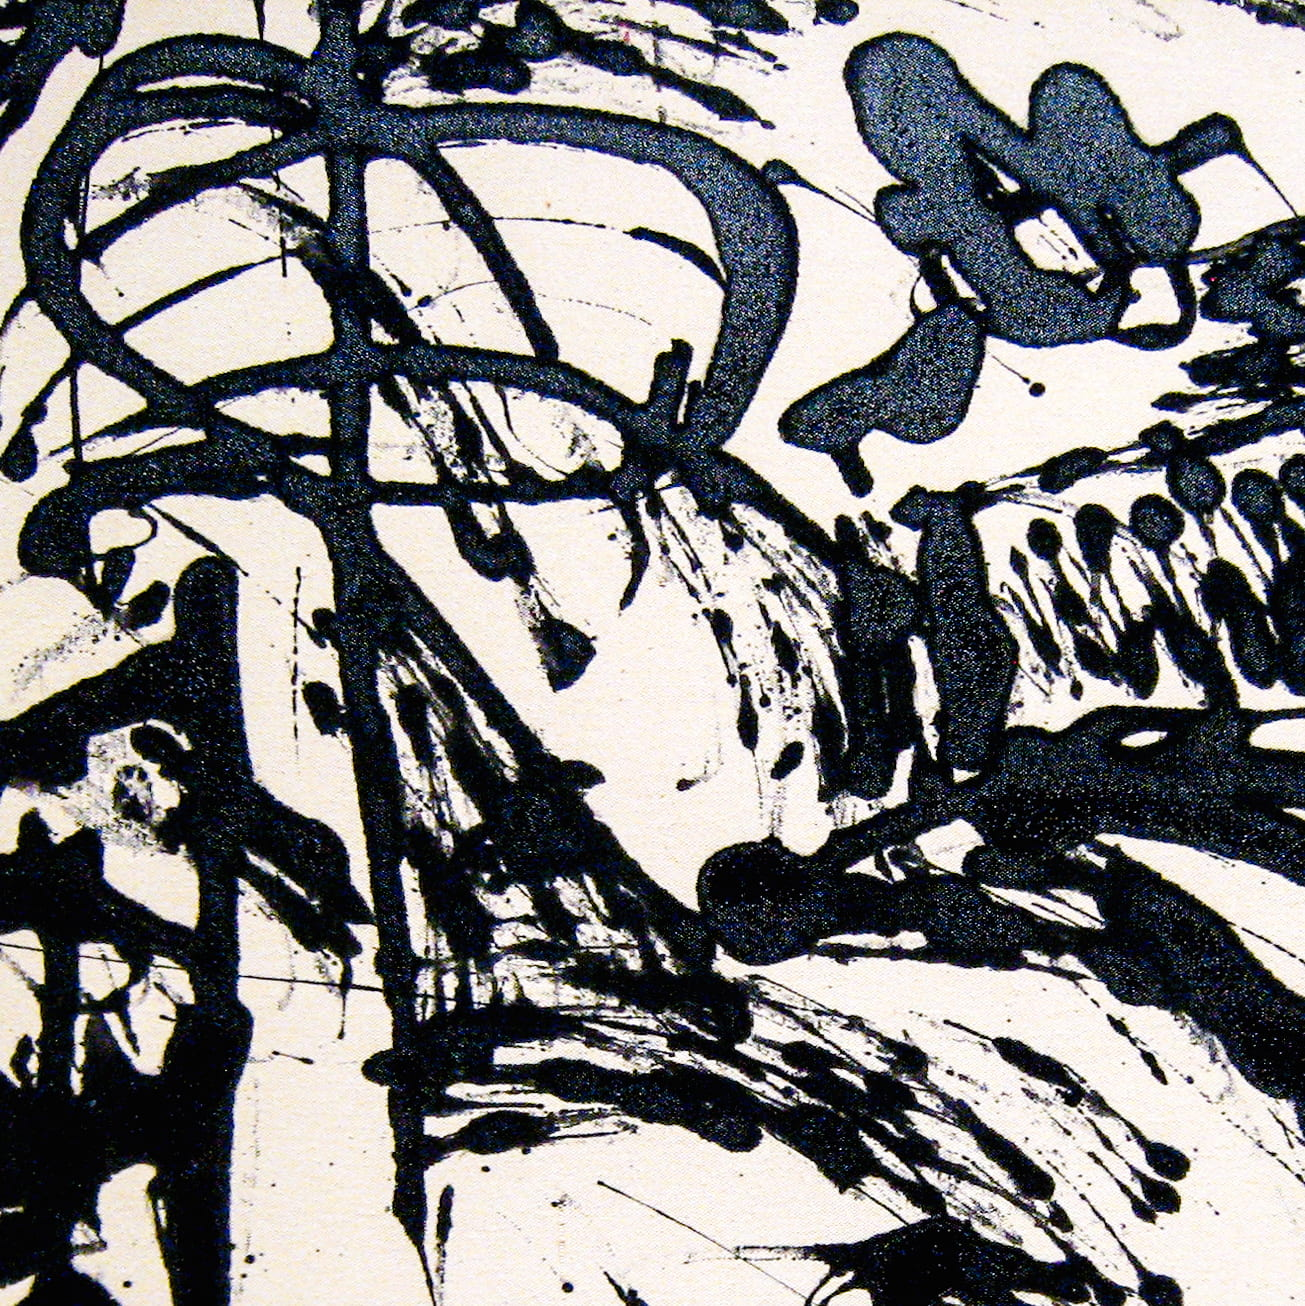 Detail from Echo: Number 25, 1951 by Jackson Pollock.